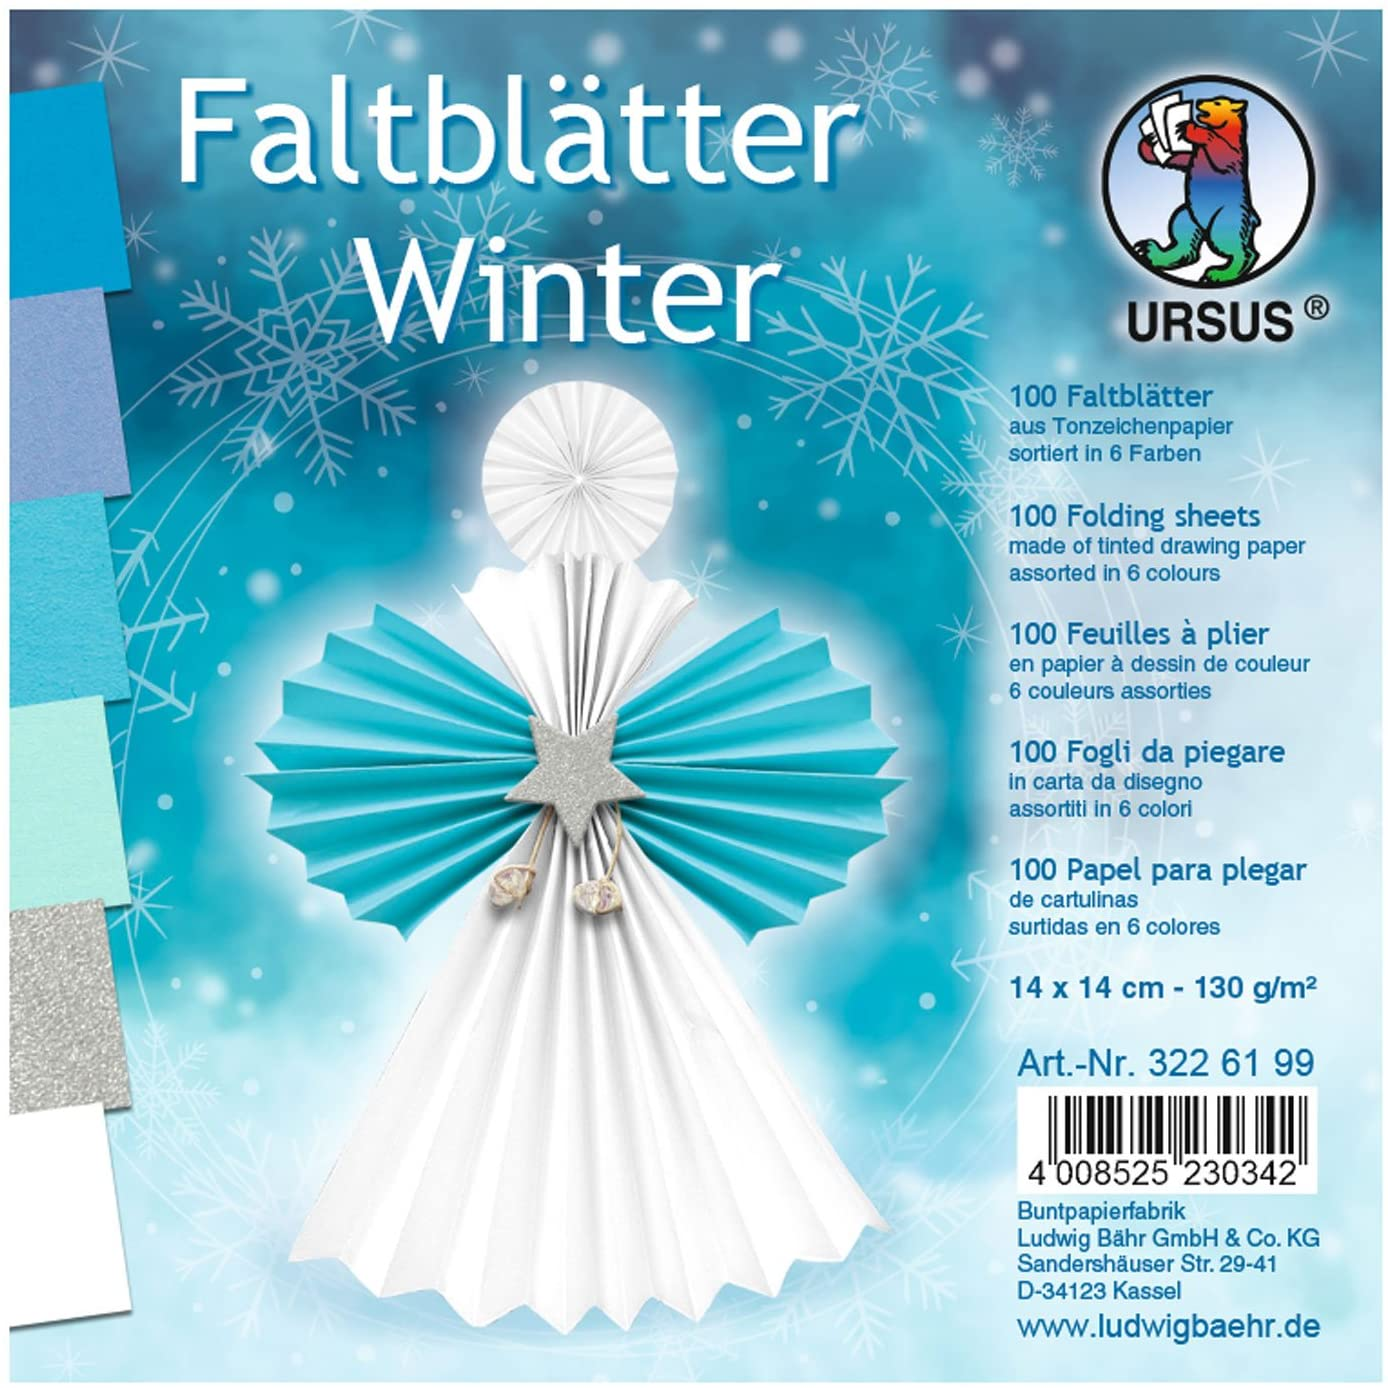 Ursus Folding Paper 100Sheets Coloured Drawing Paper 130g/m²